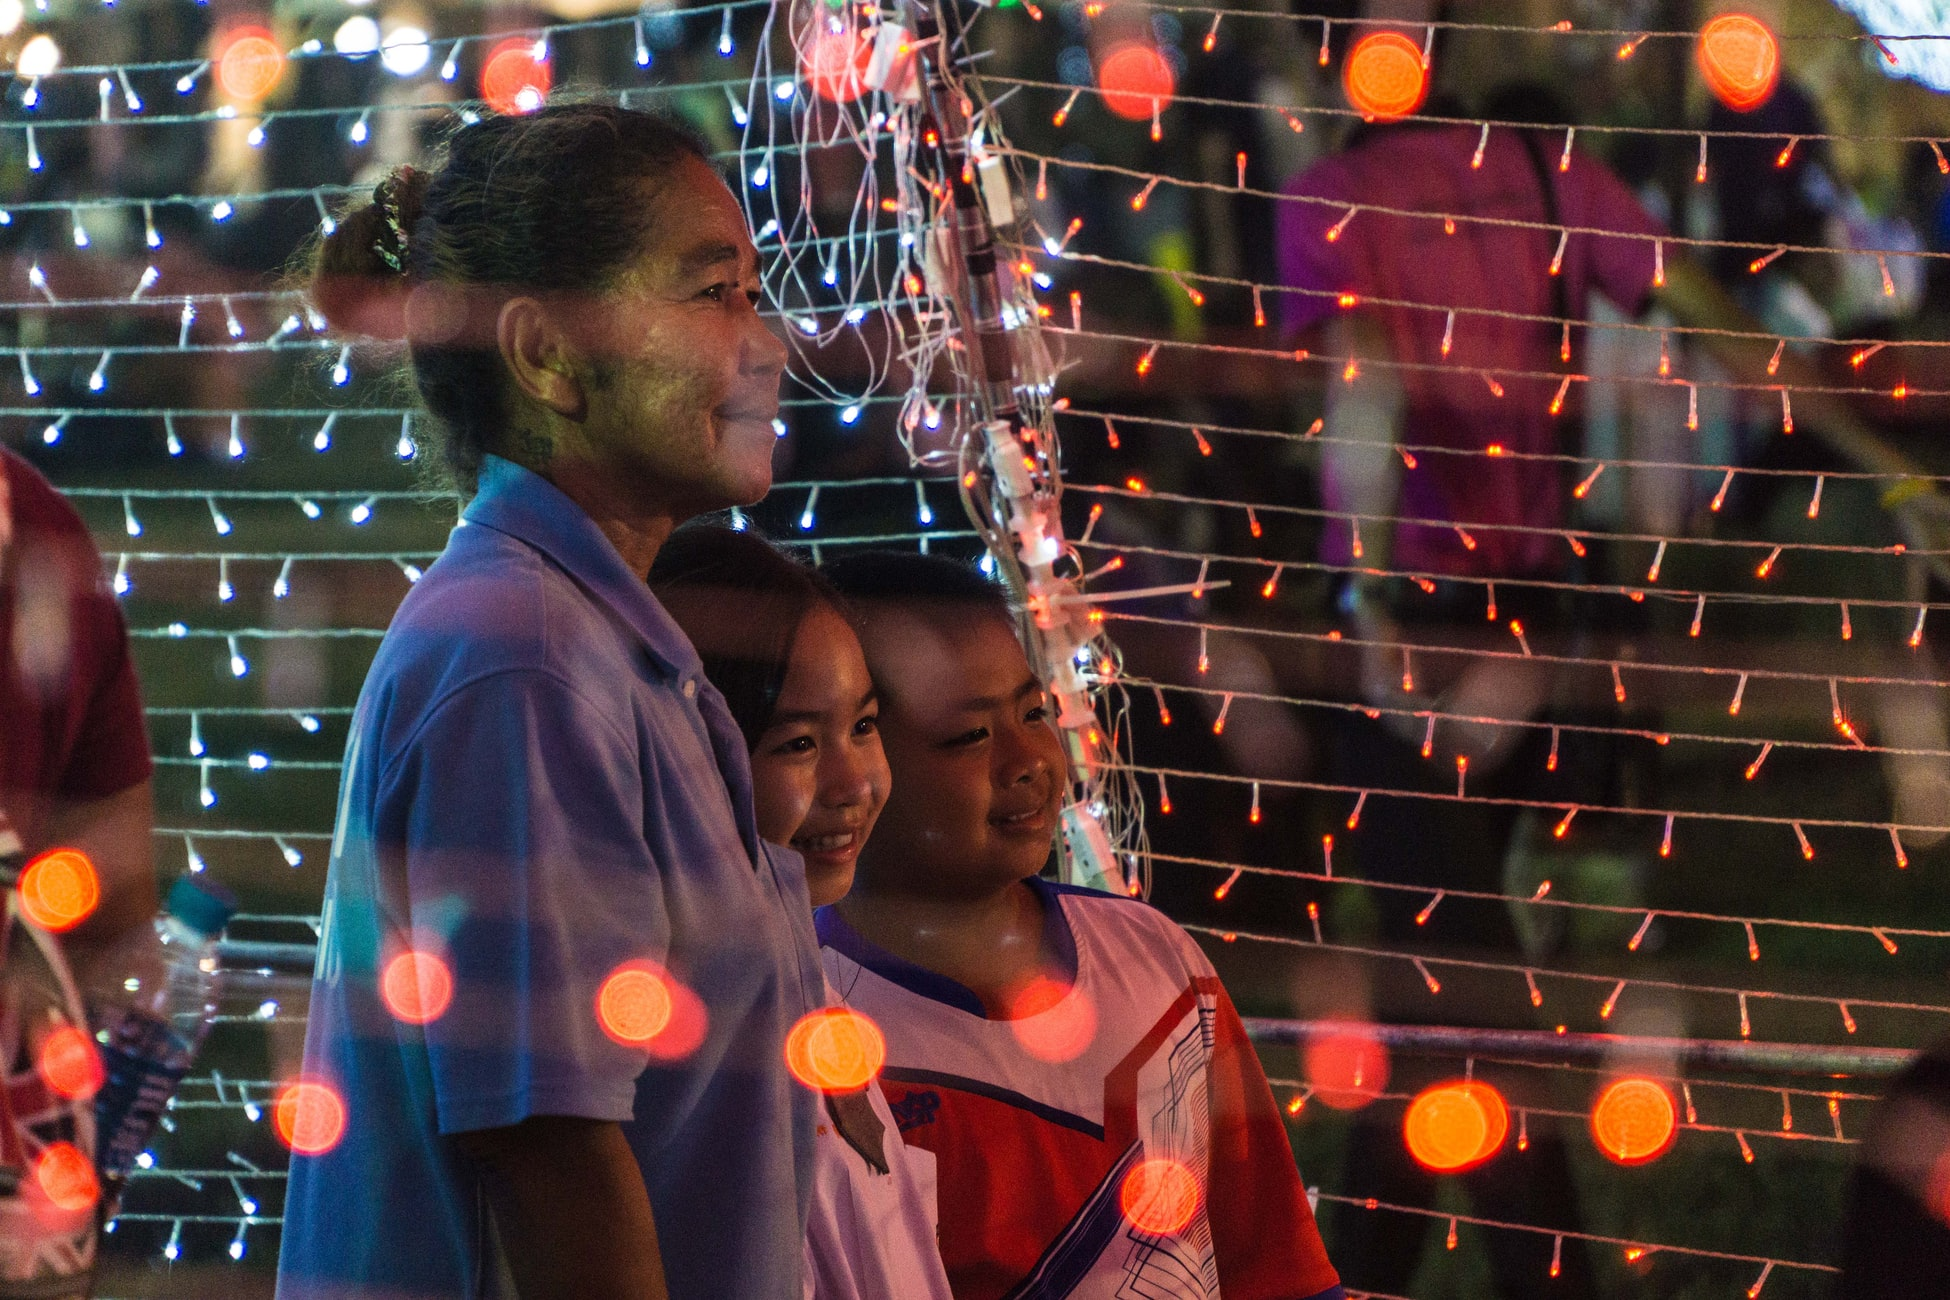 A photo of an elderly woman with children standing next to her at a street festival of some kind. She is looking out at something with a contented smile on her face. There are lights all around.